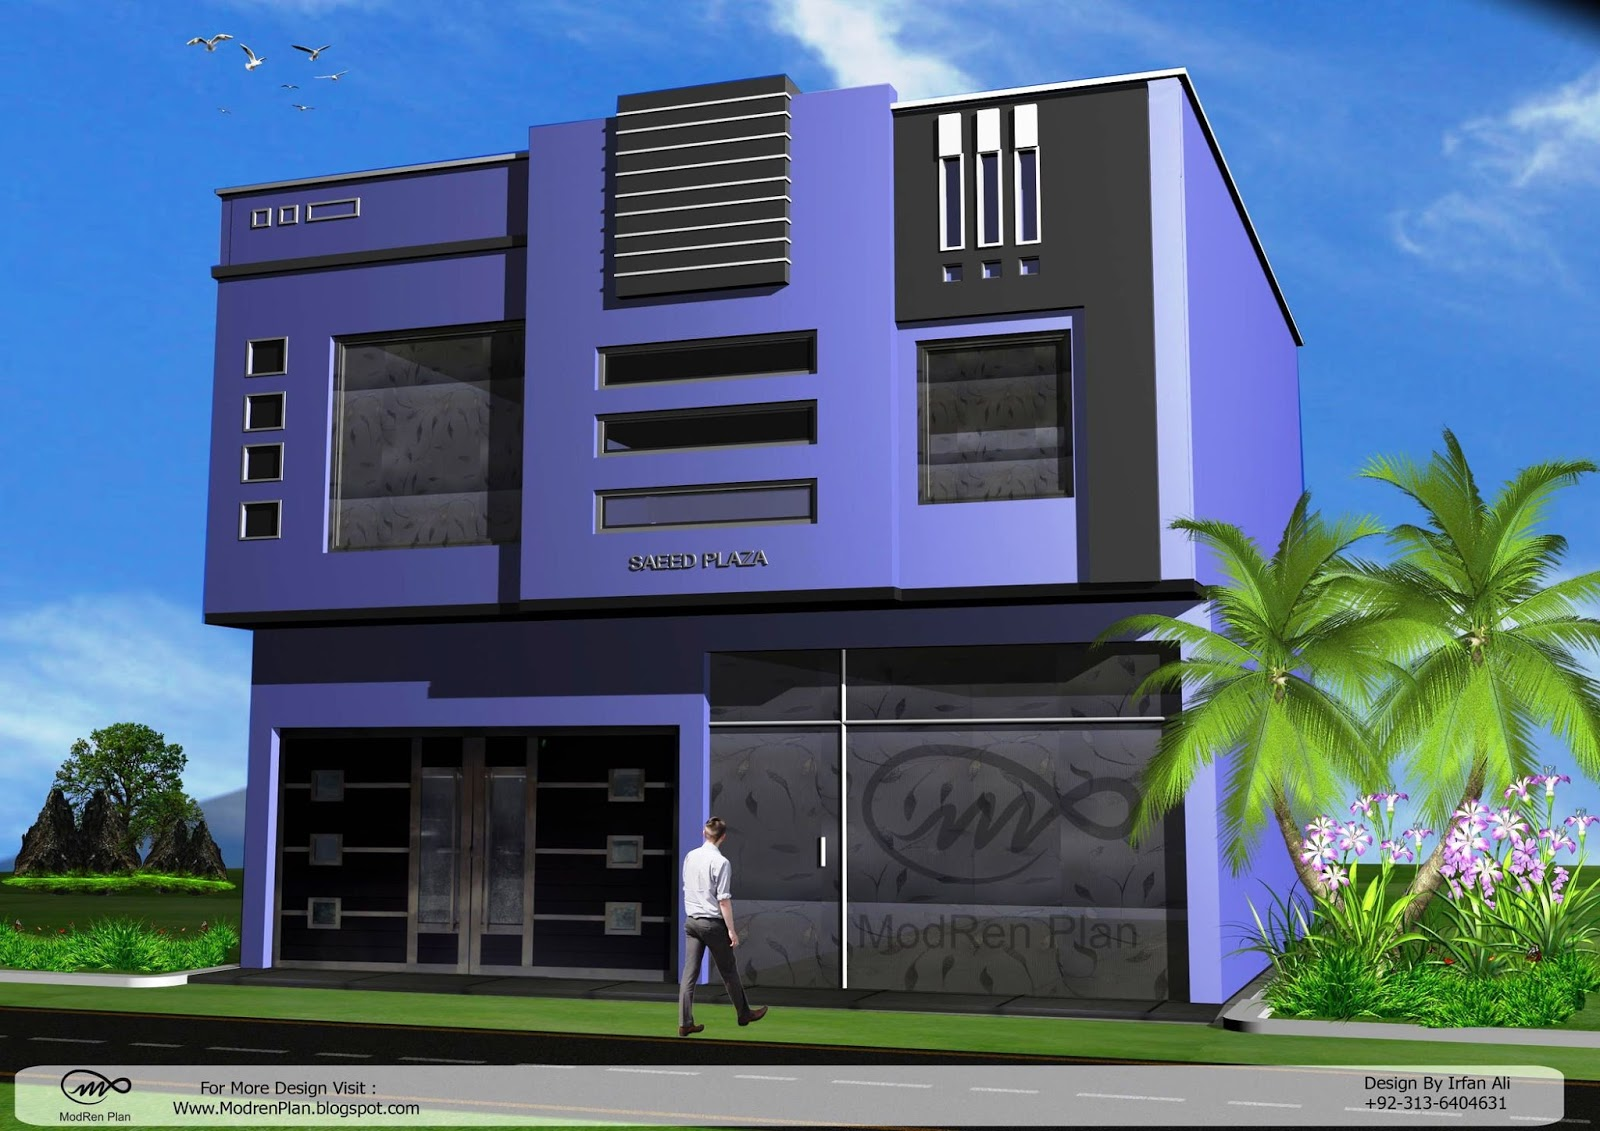 Modern commercial building designs and plaza front elevation for Building design plans